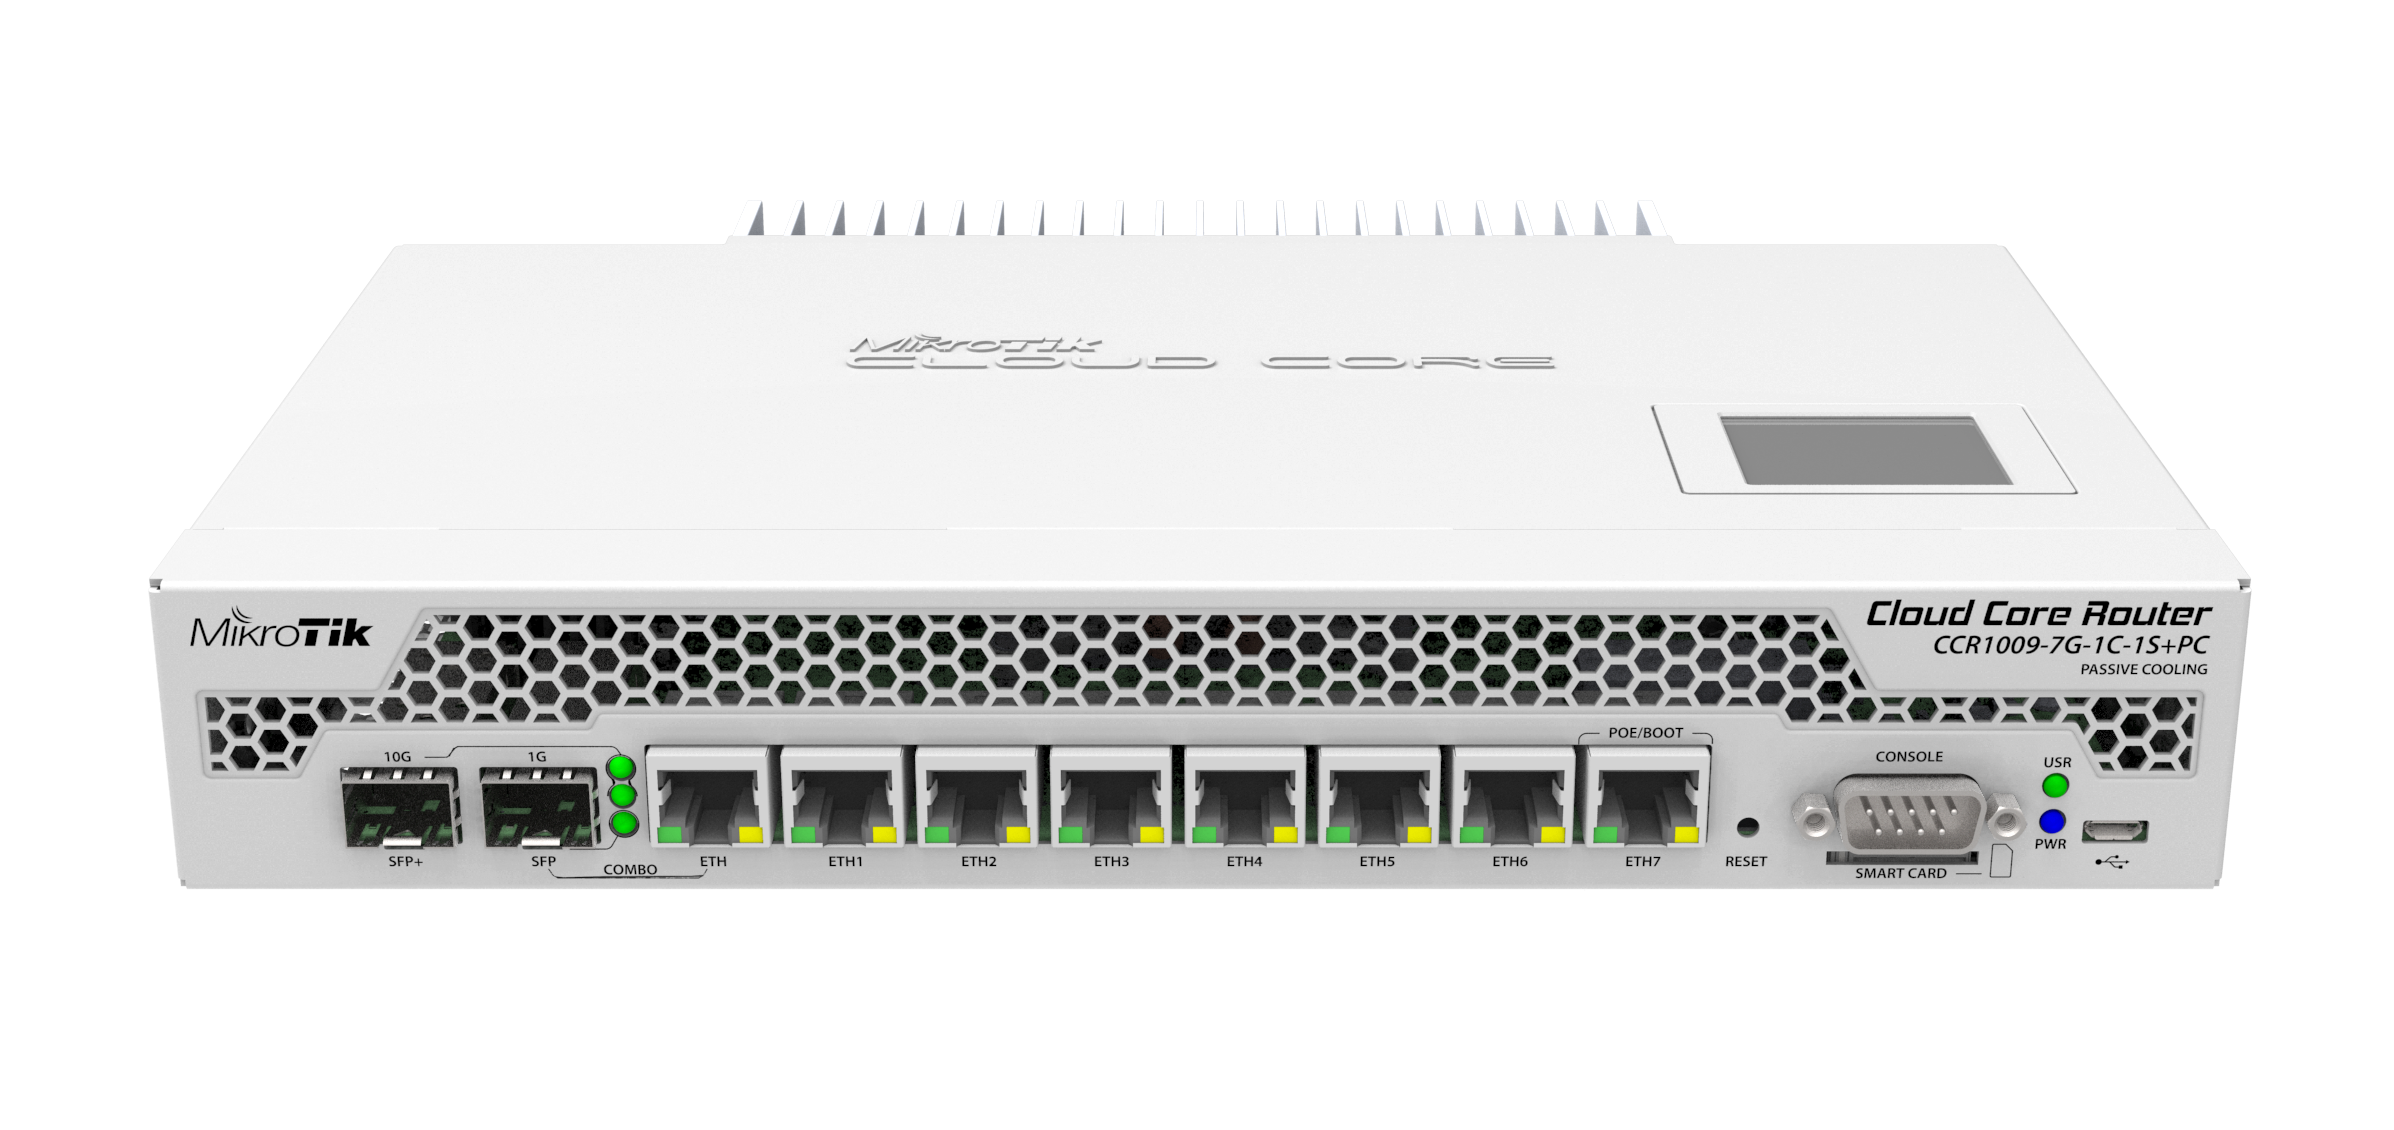 CCR1009-7G-1C-1SplusPC Cloud Core Router 1009-7G-1C-1S+PC 1x Combo Port, 7xGbit LAN , 1xSFP+ 10Gbit, LCD, L6